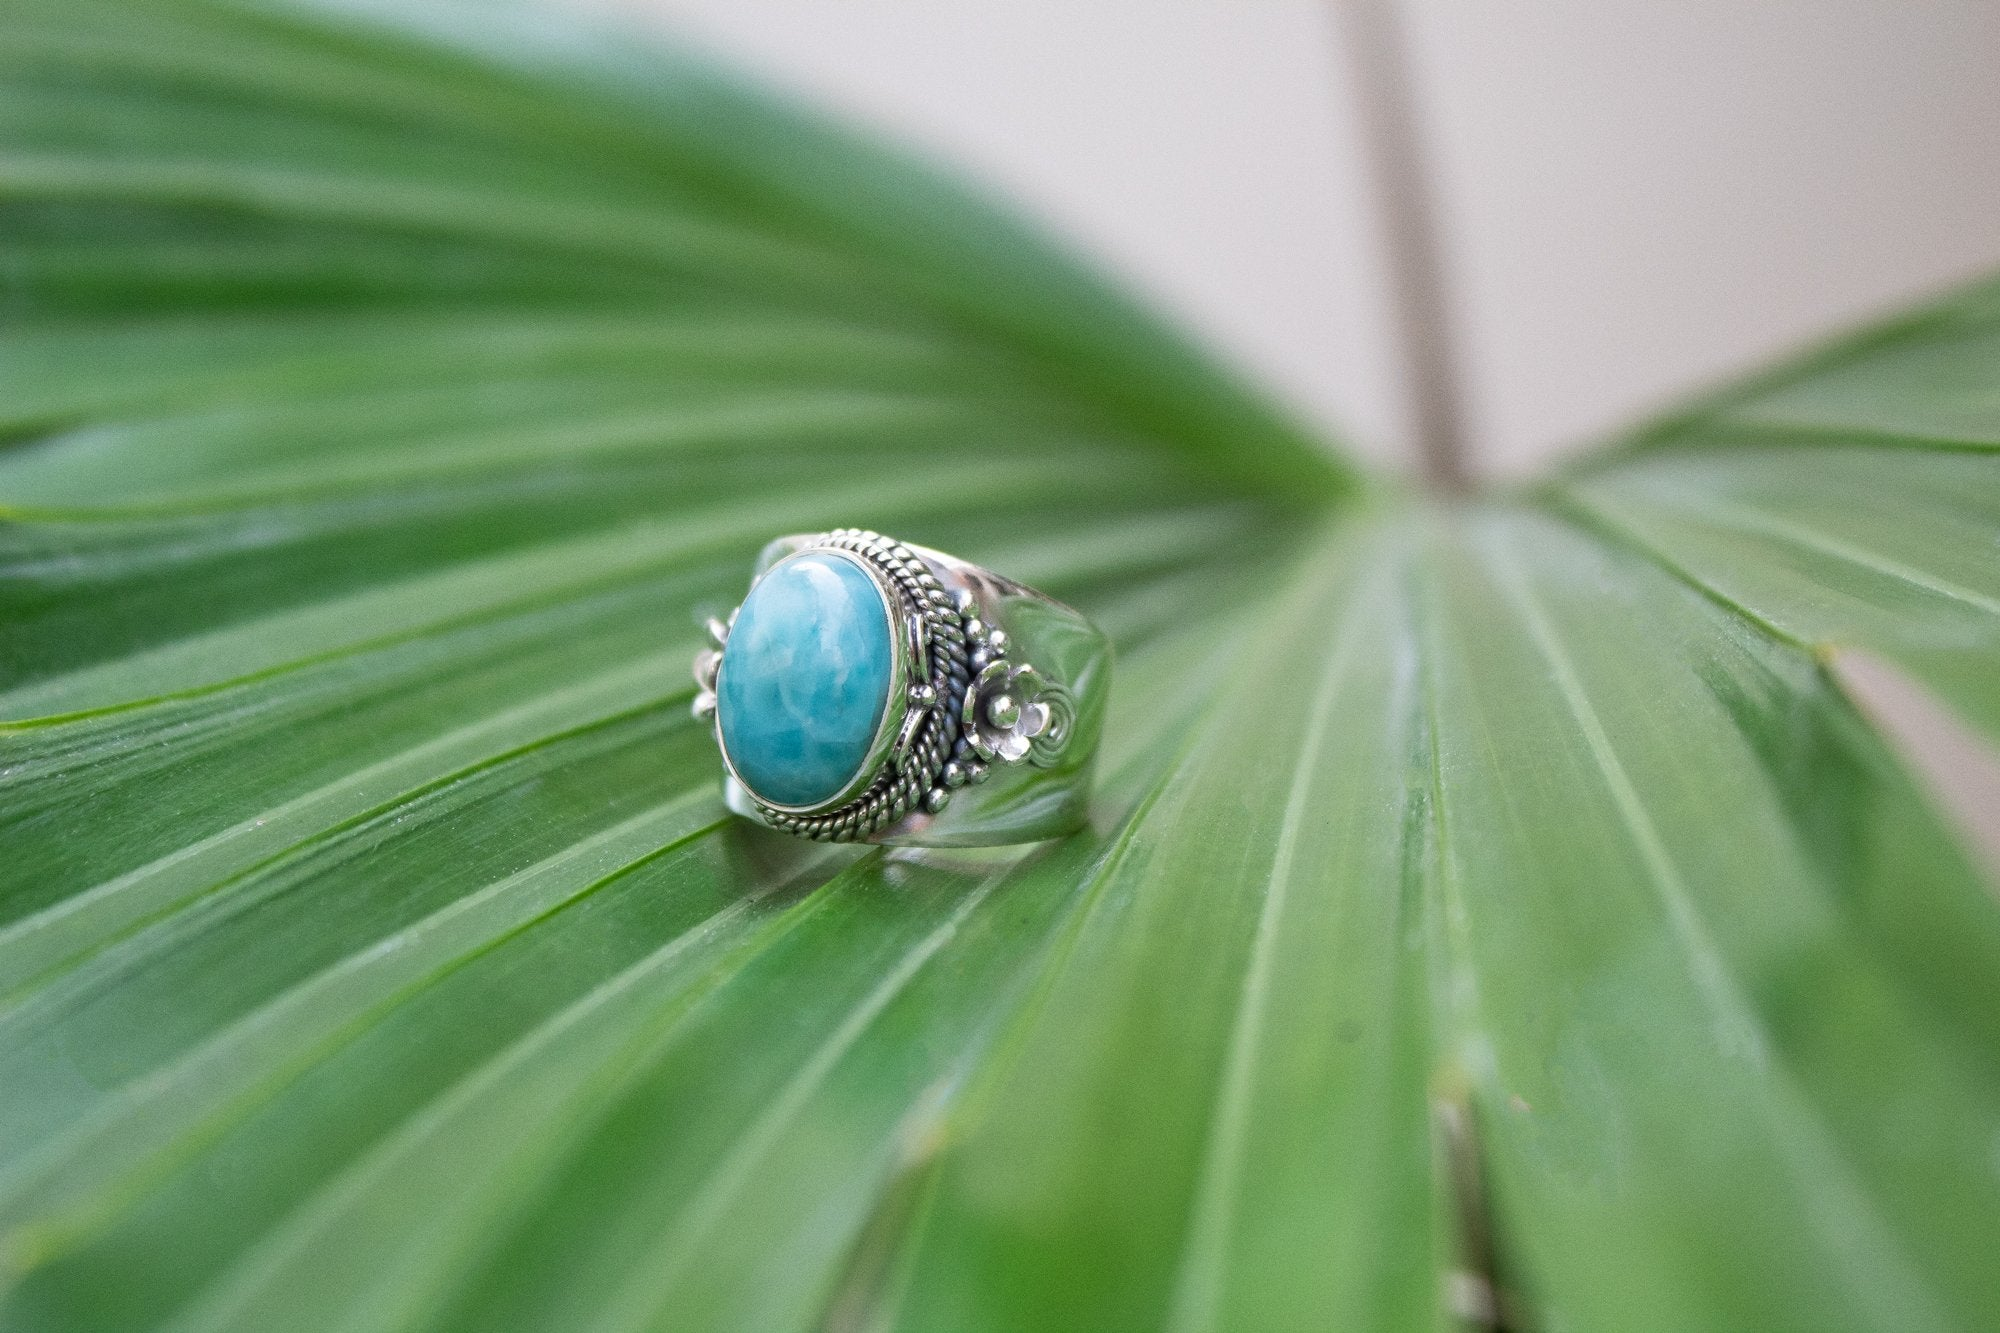 Dominican Republican Larimar Stone Ring, Wide Band Ring, Boho Gypsy Ring AR-1173 - Its Ambra